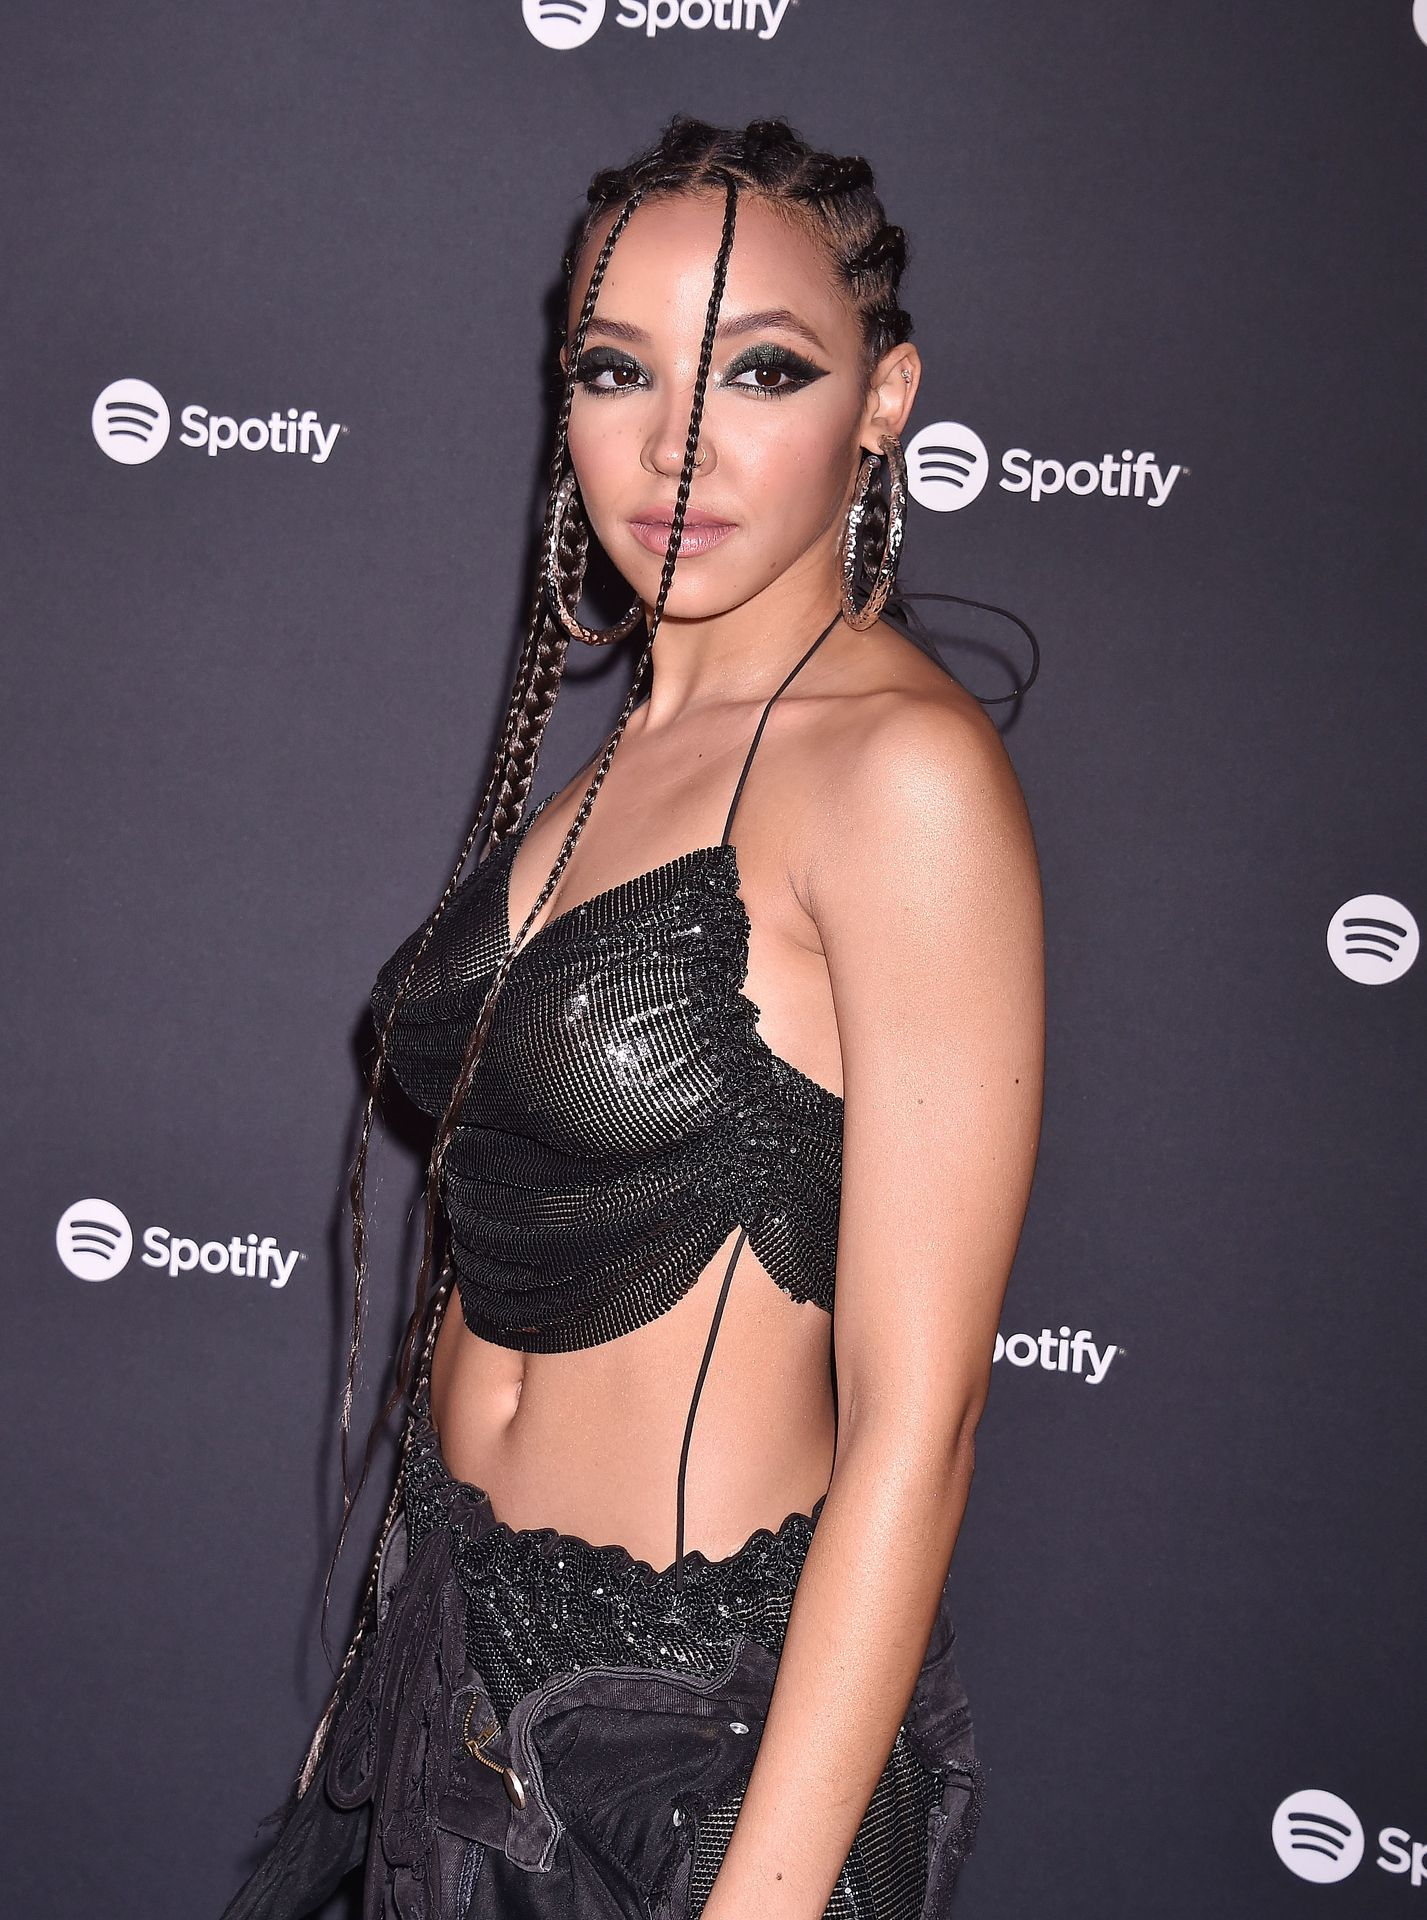 Tinashe Flaunts Her Tits At The Spotify Best New Artist Party 0023